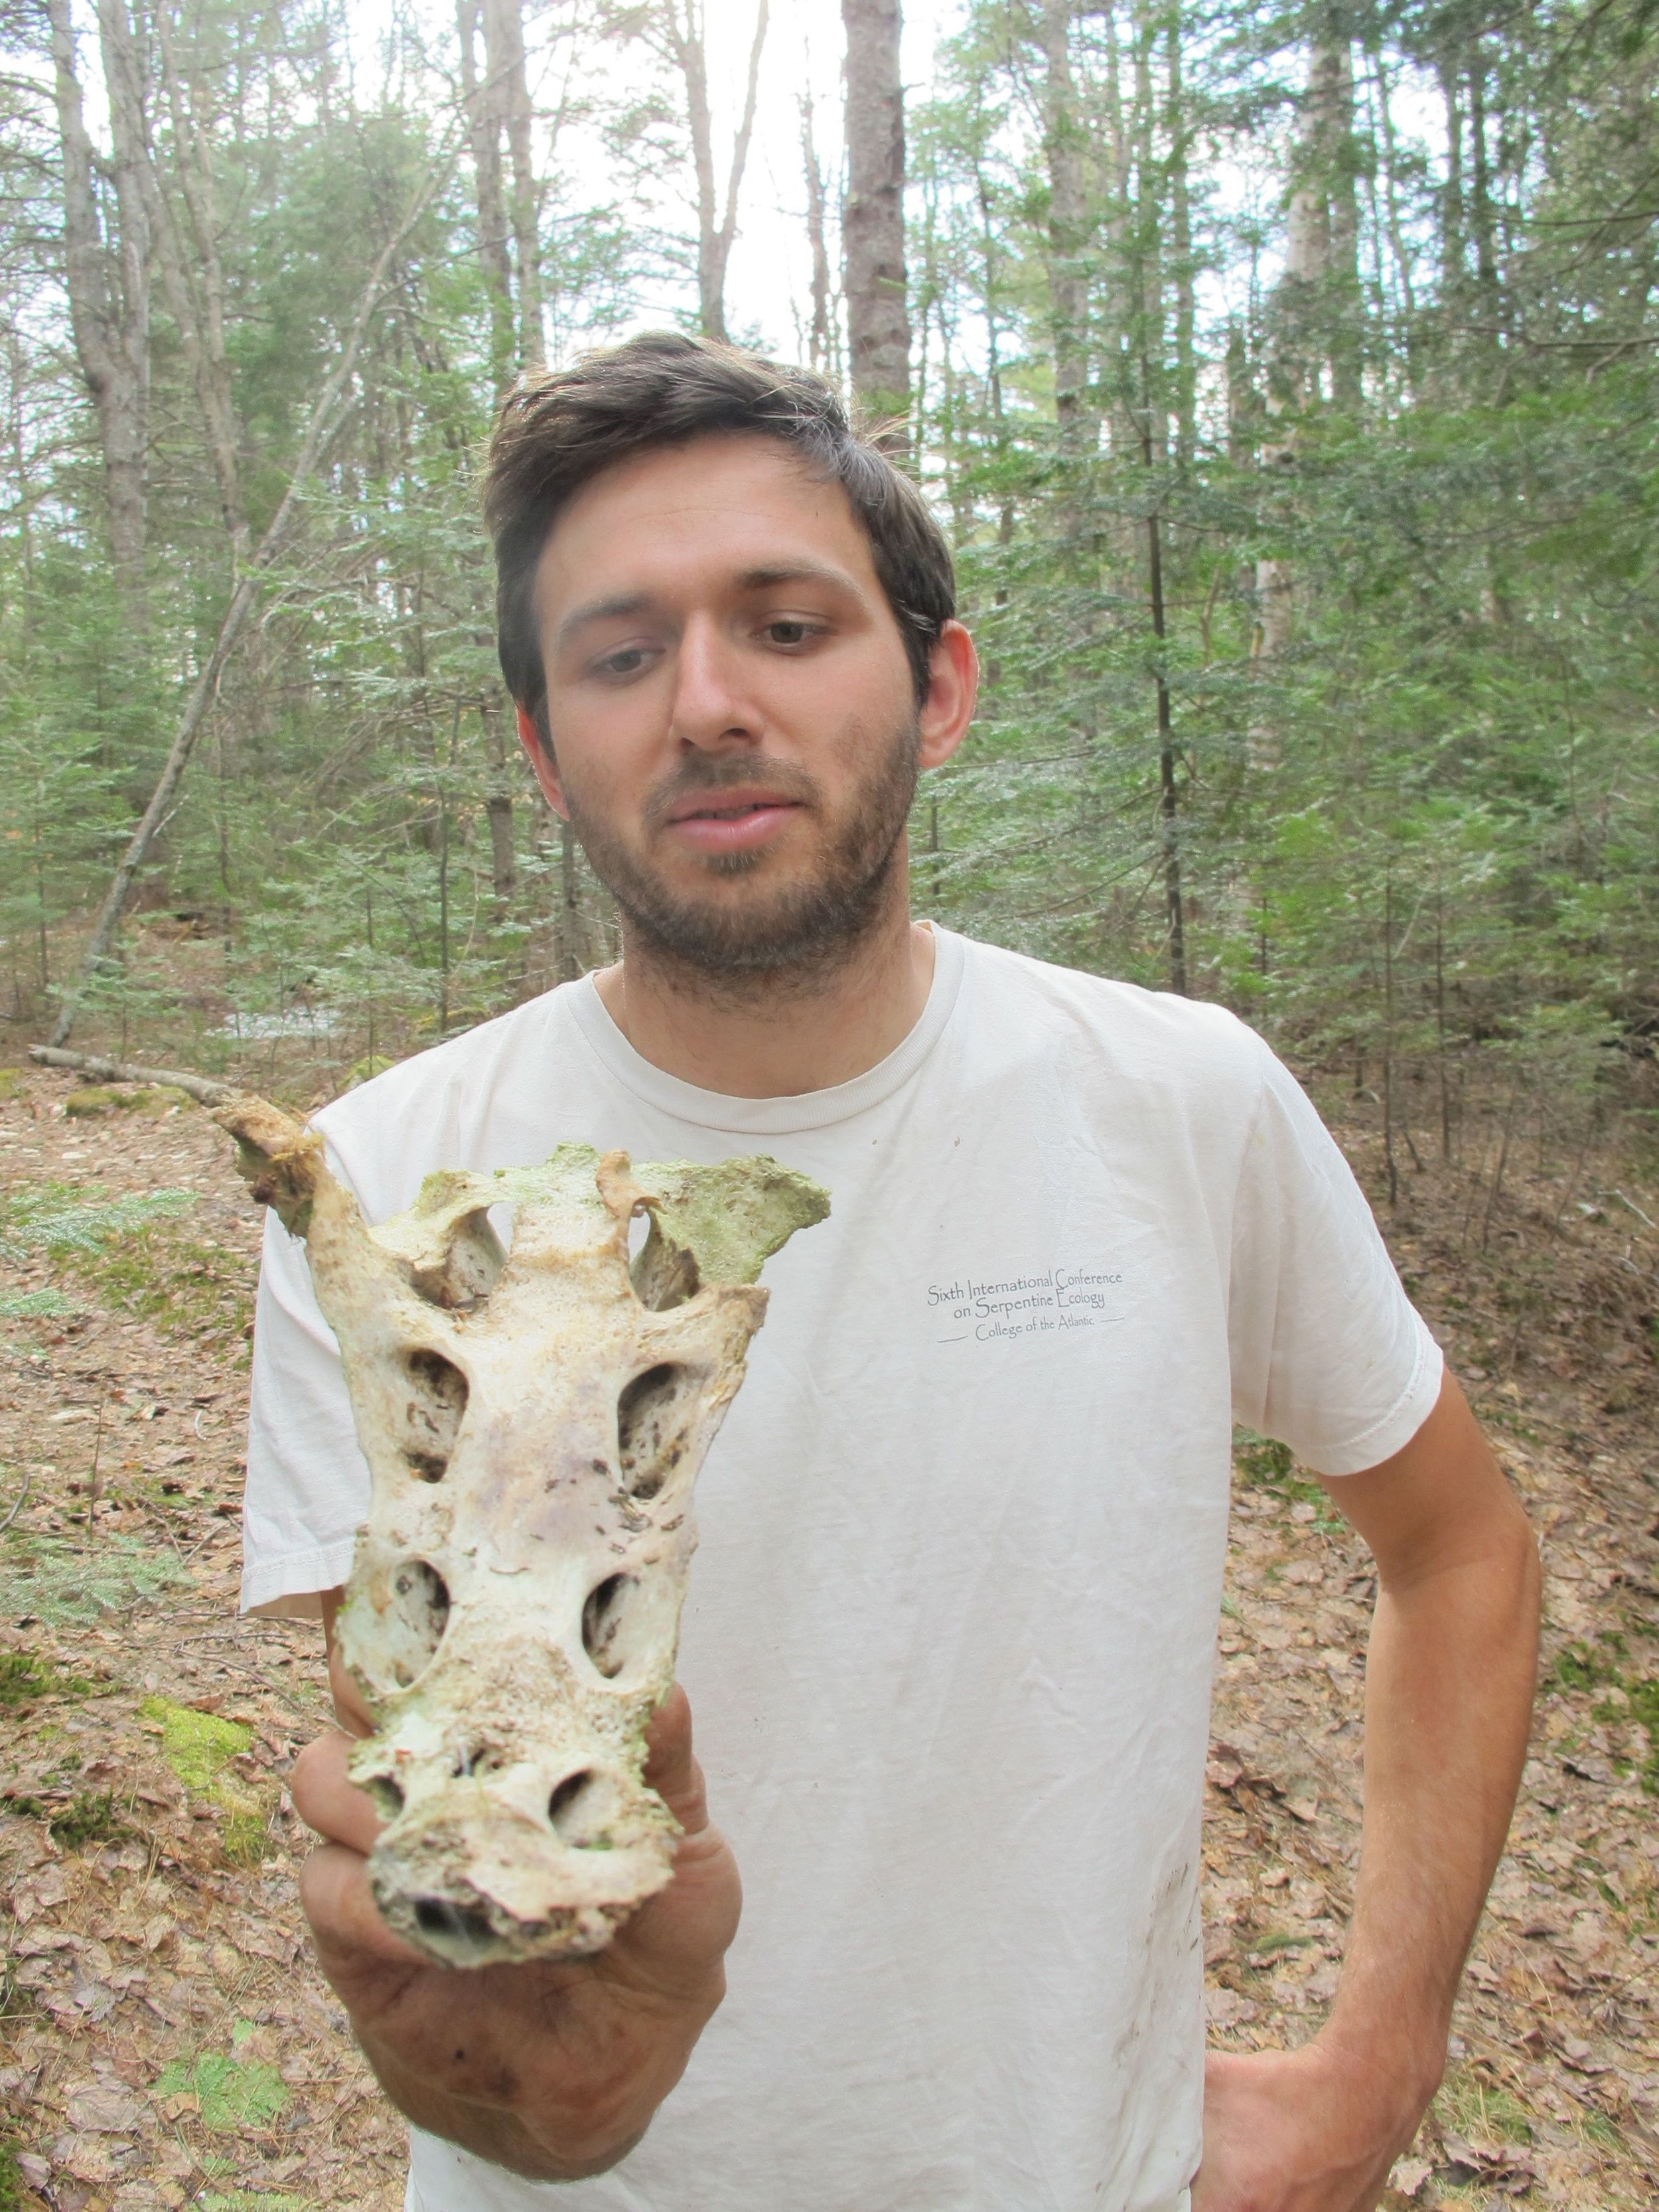 Brett found what we believe is part of a moose skull.